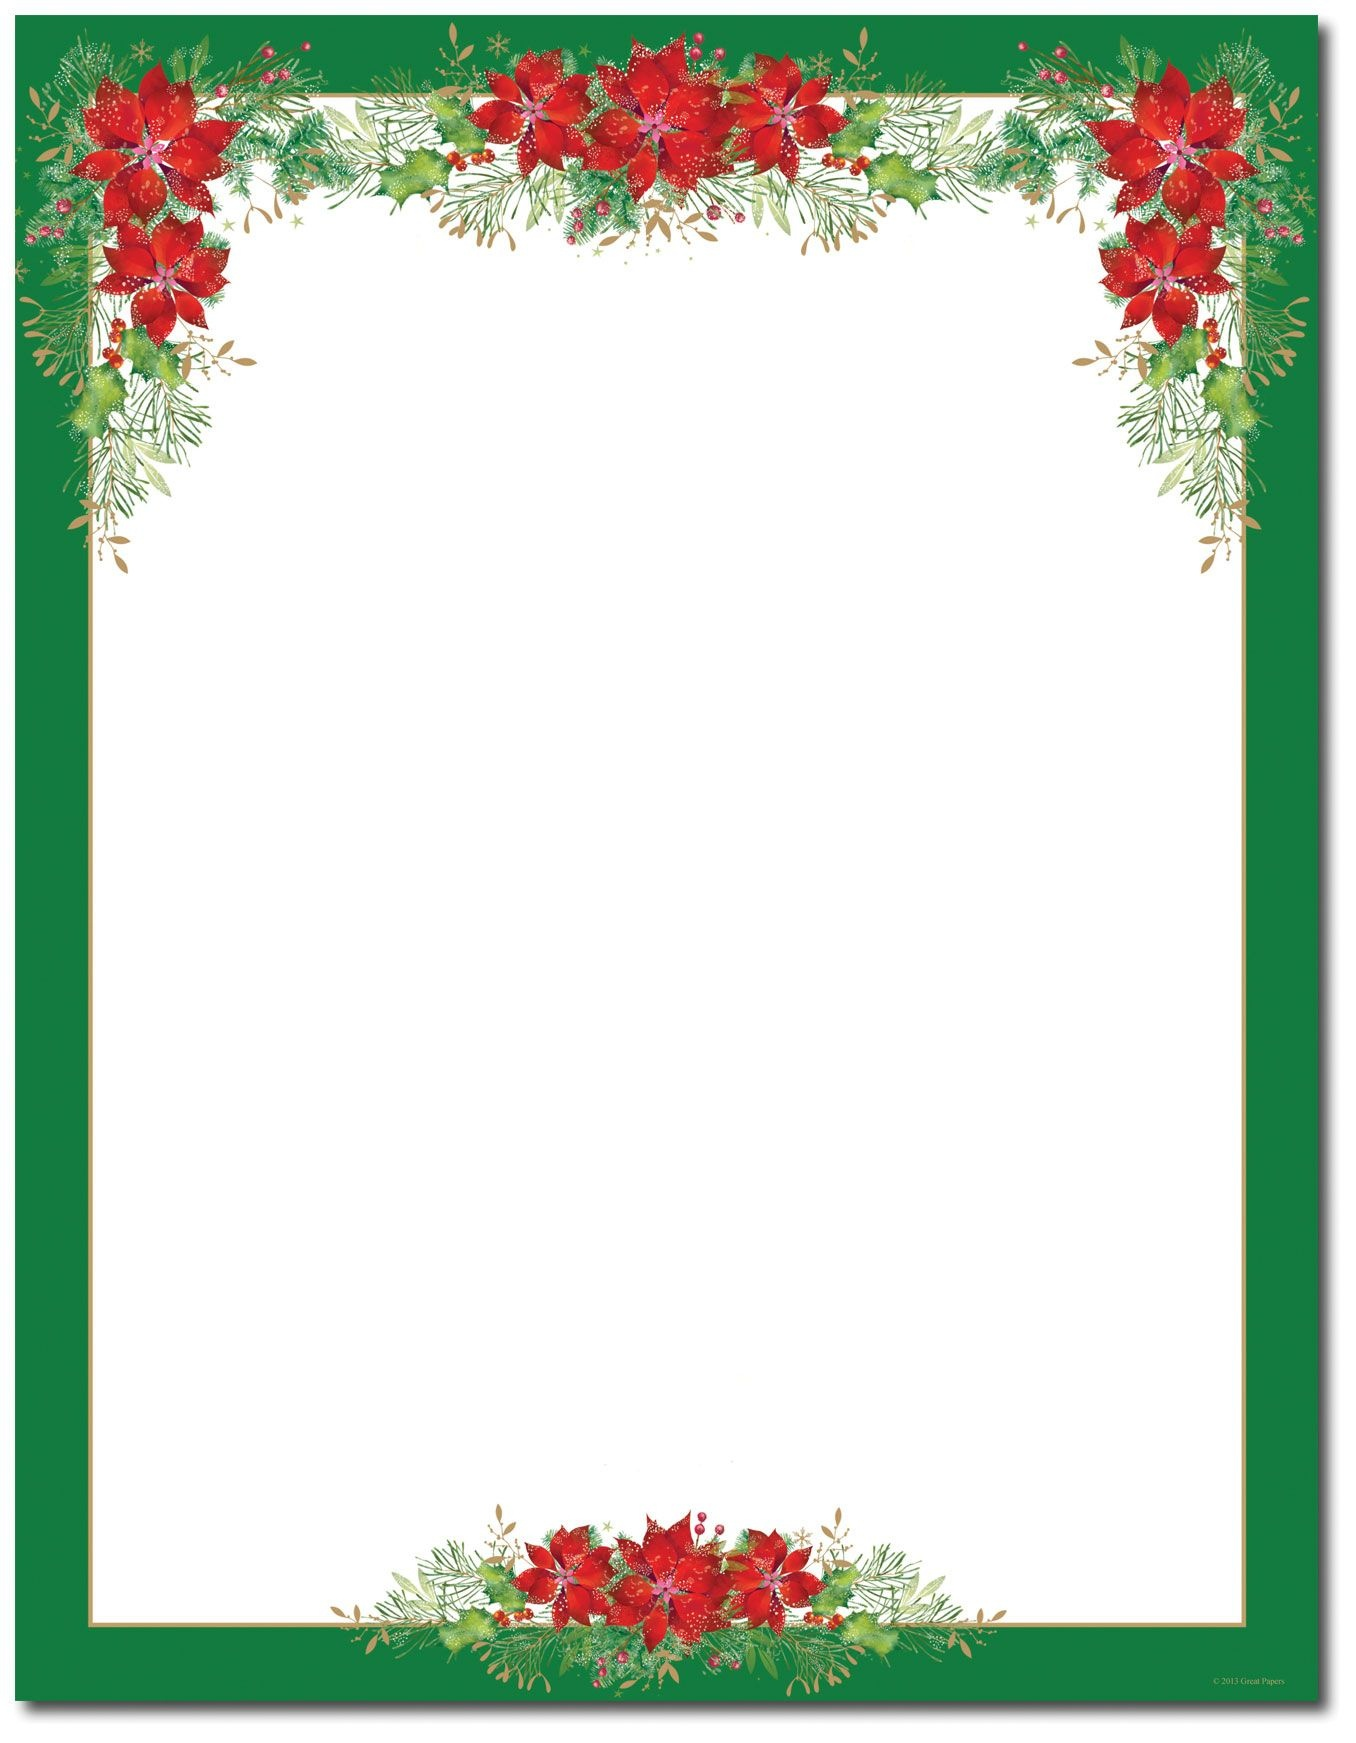 Poinsettia Valance Letterhead | Holiday Papers | Christmas Border - Free Printable Christmas Stationary Paper